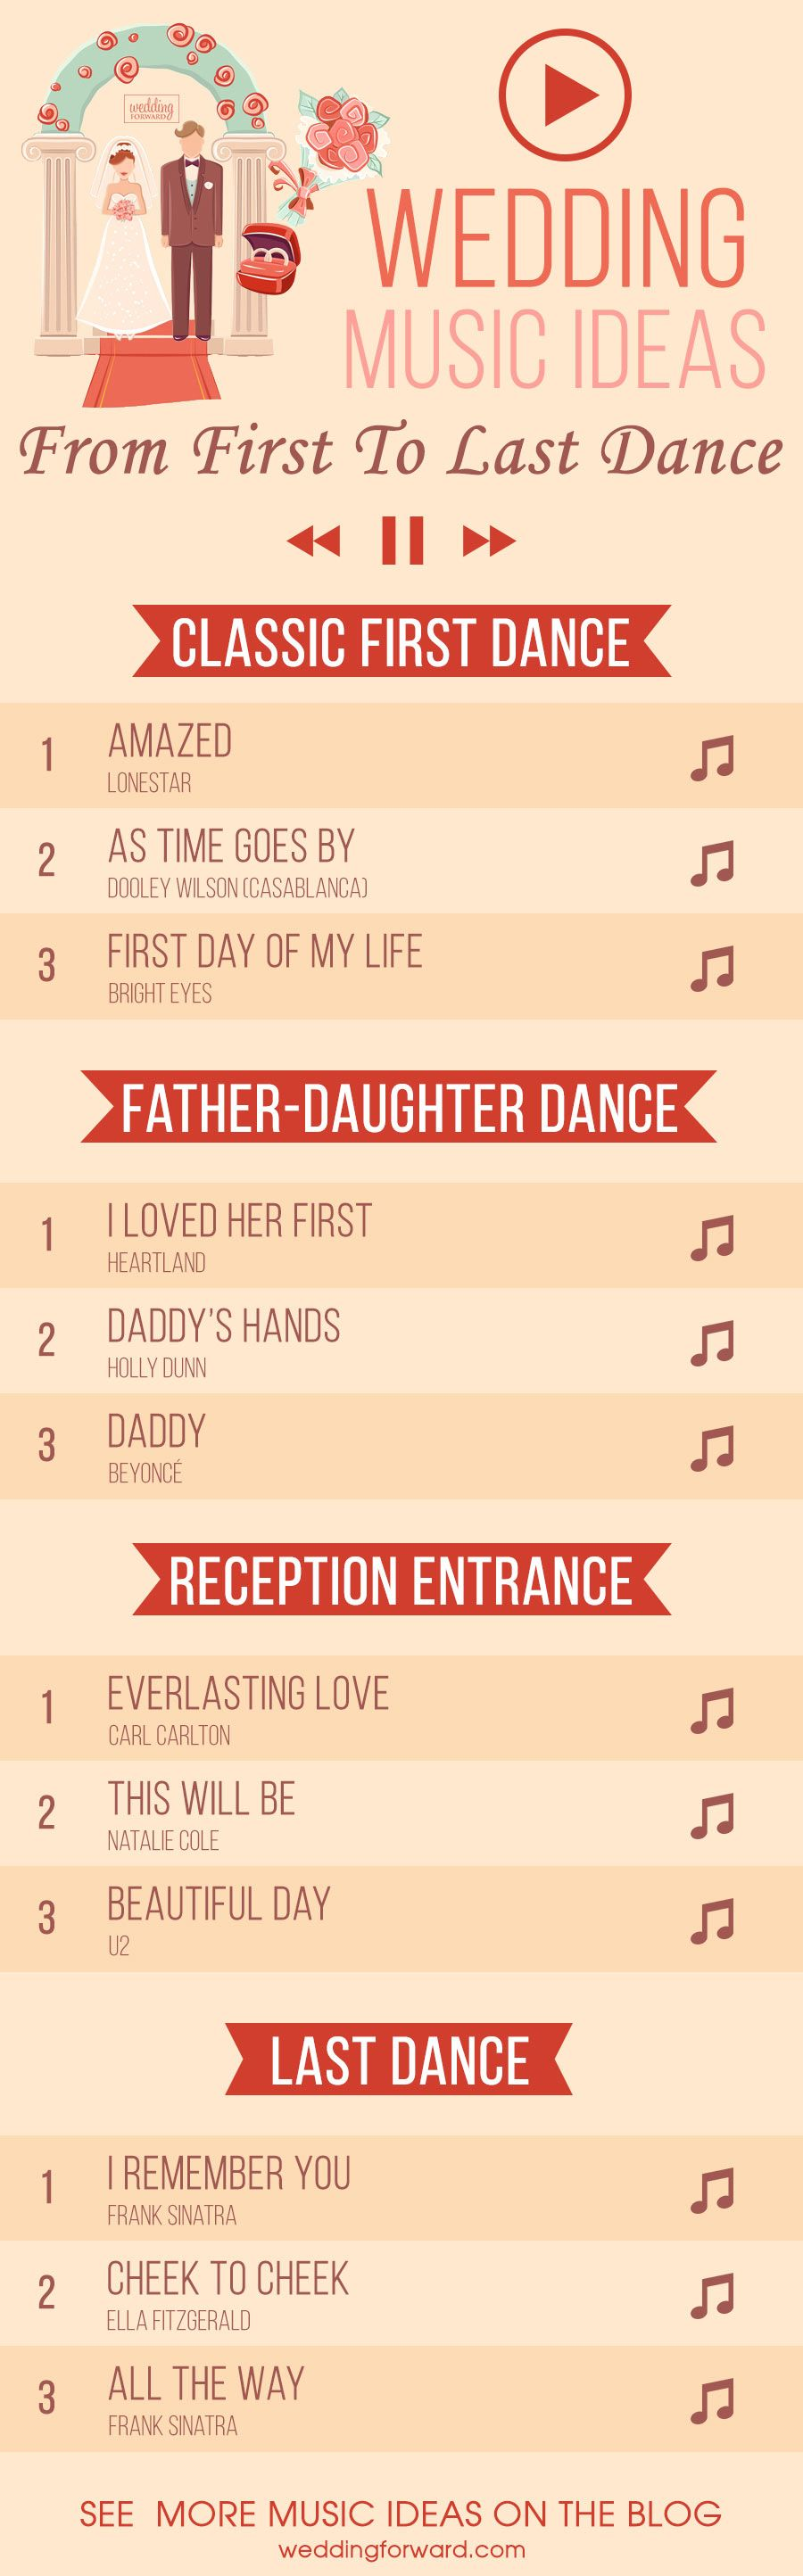 Wedding Music Ideas From First To Last Dance PlaylistsBest Songs